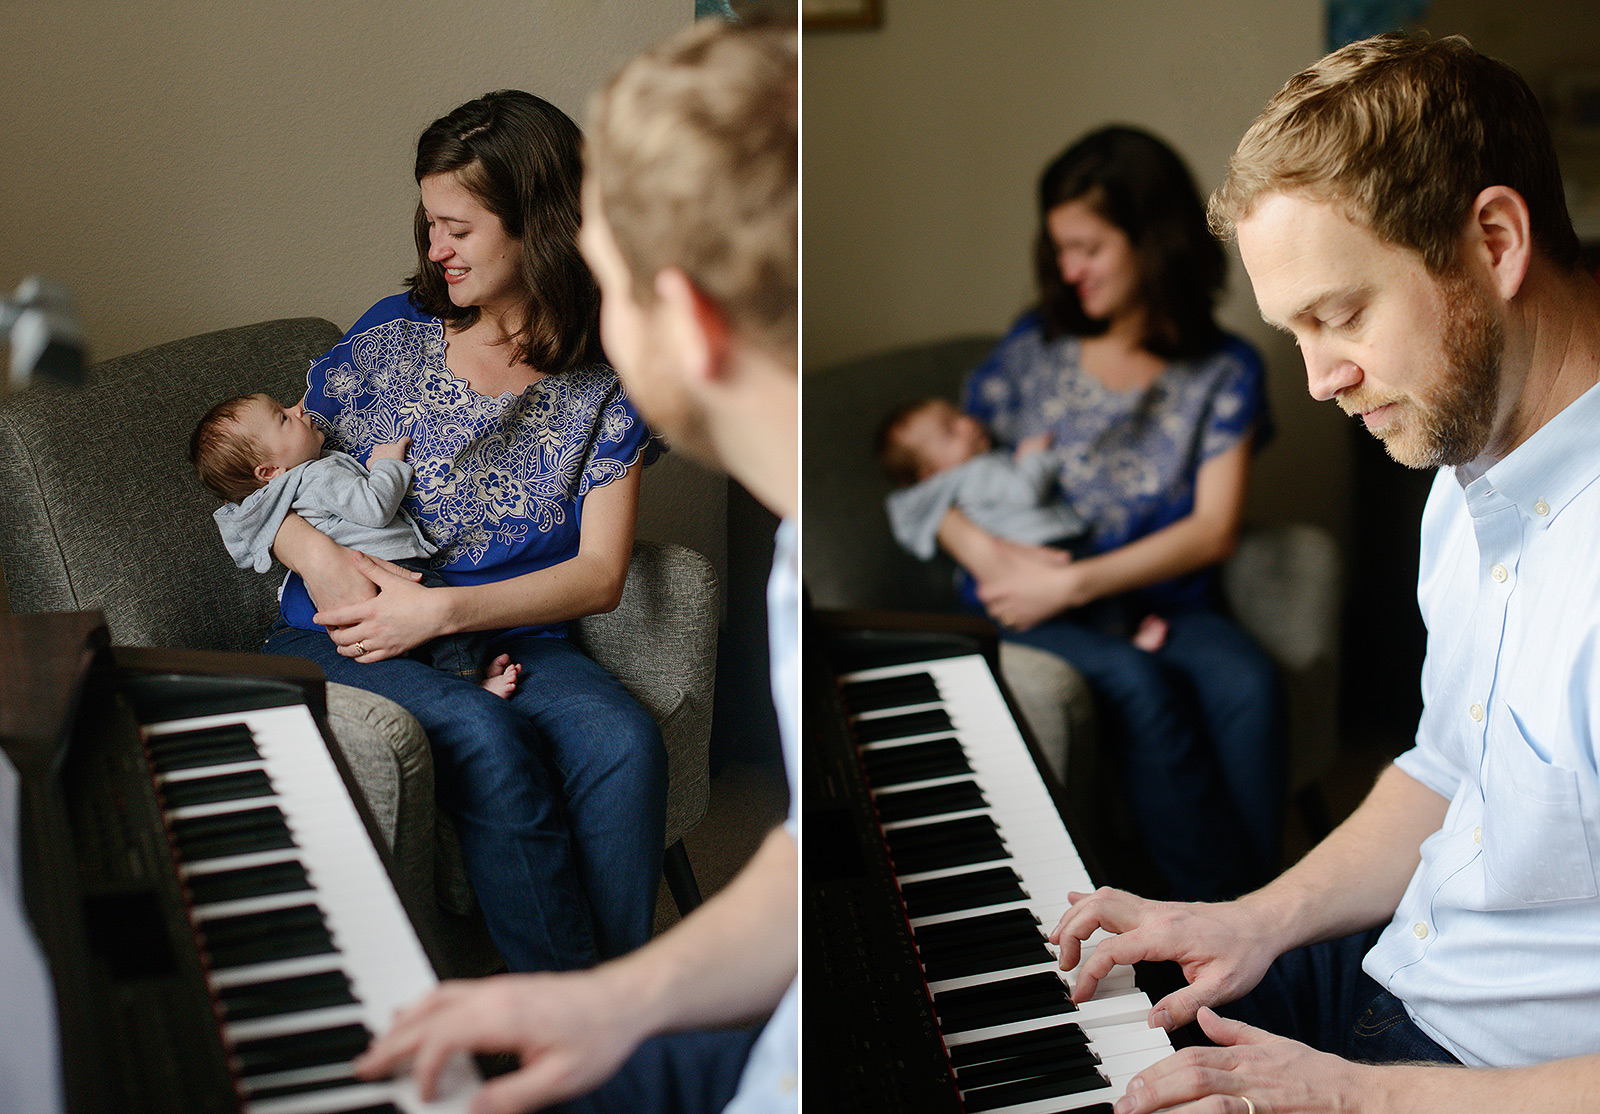 Dad plays the piano for newborn baby and mom